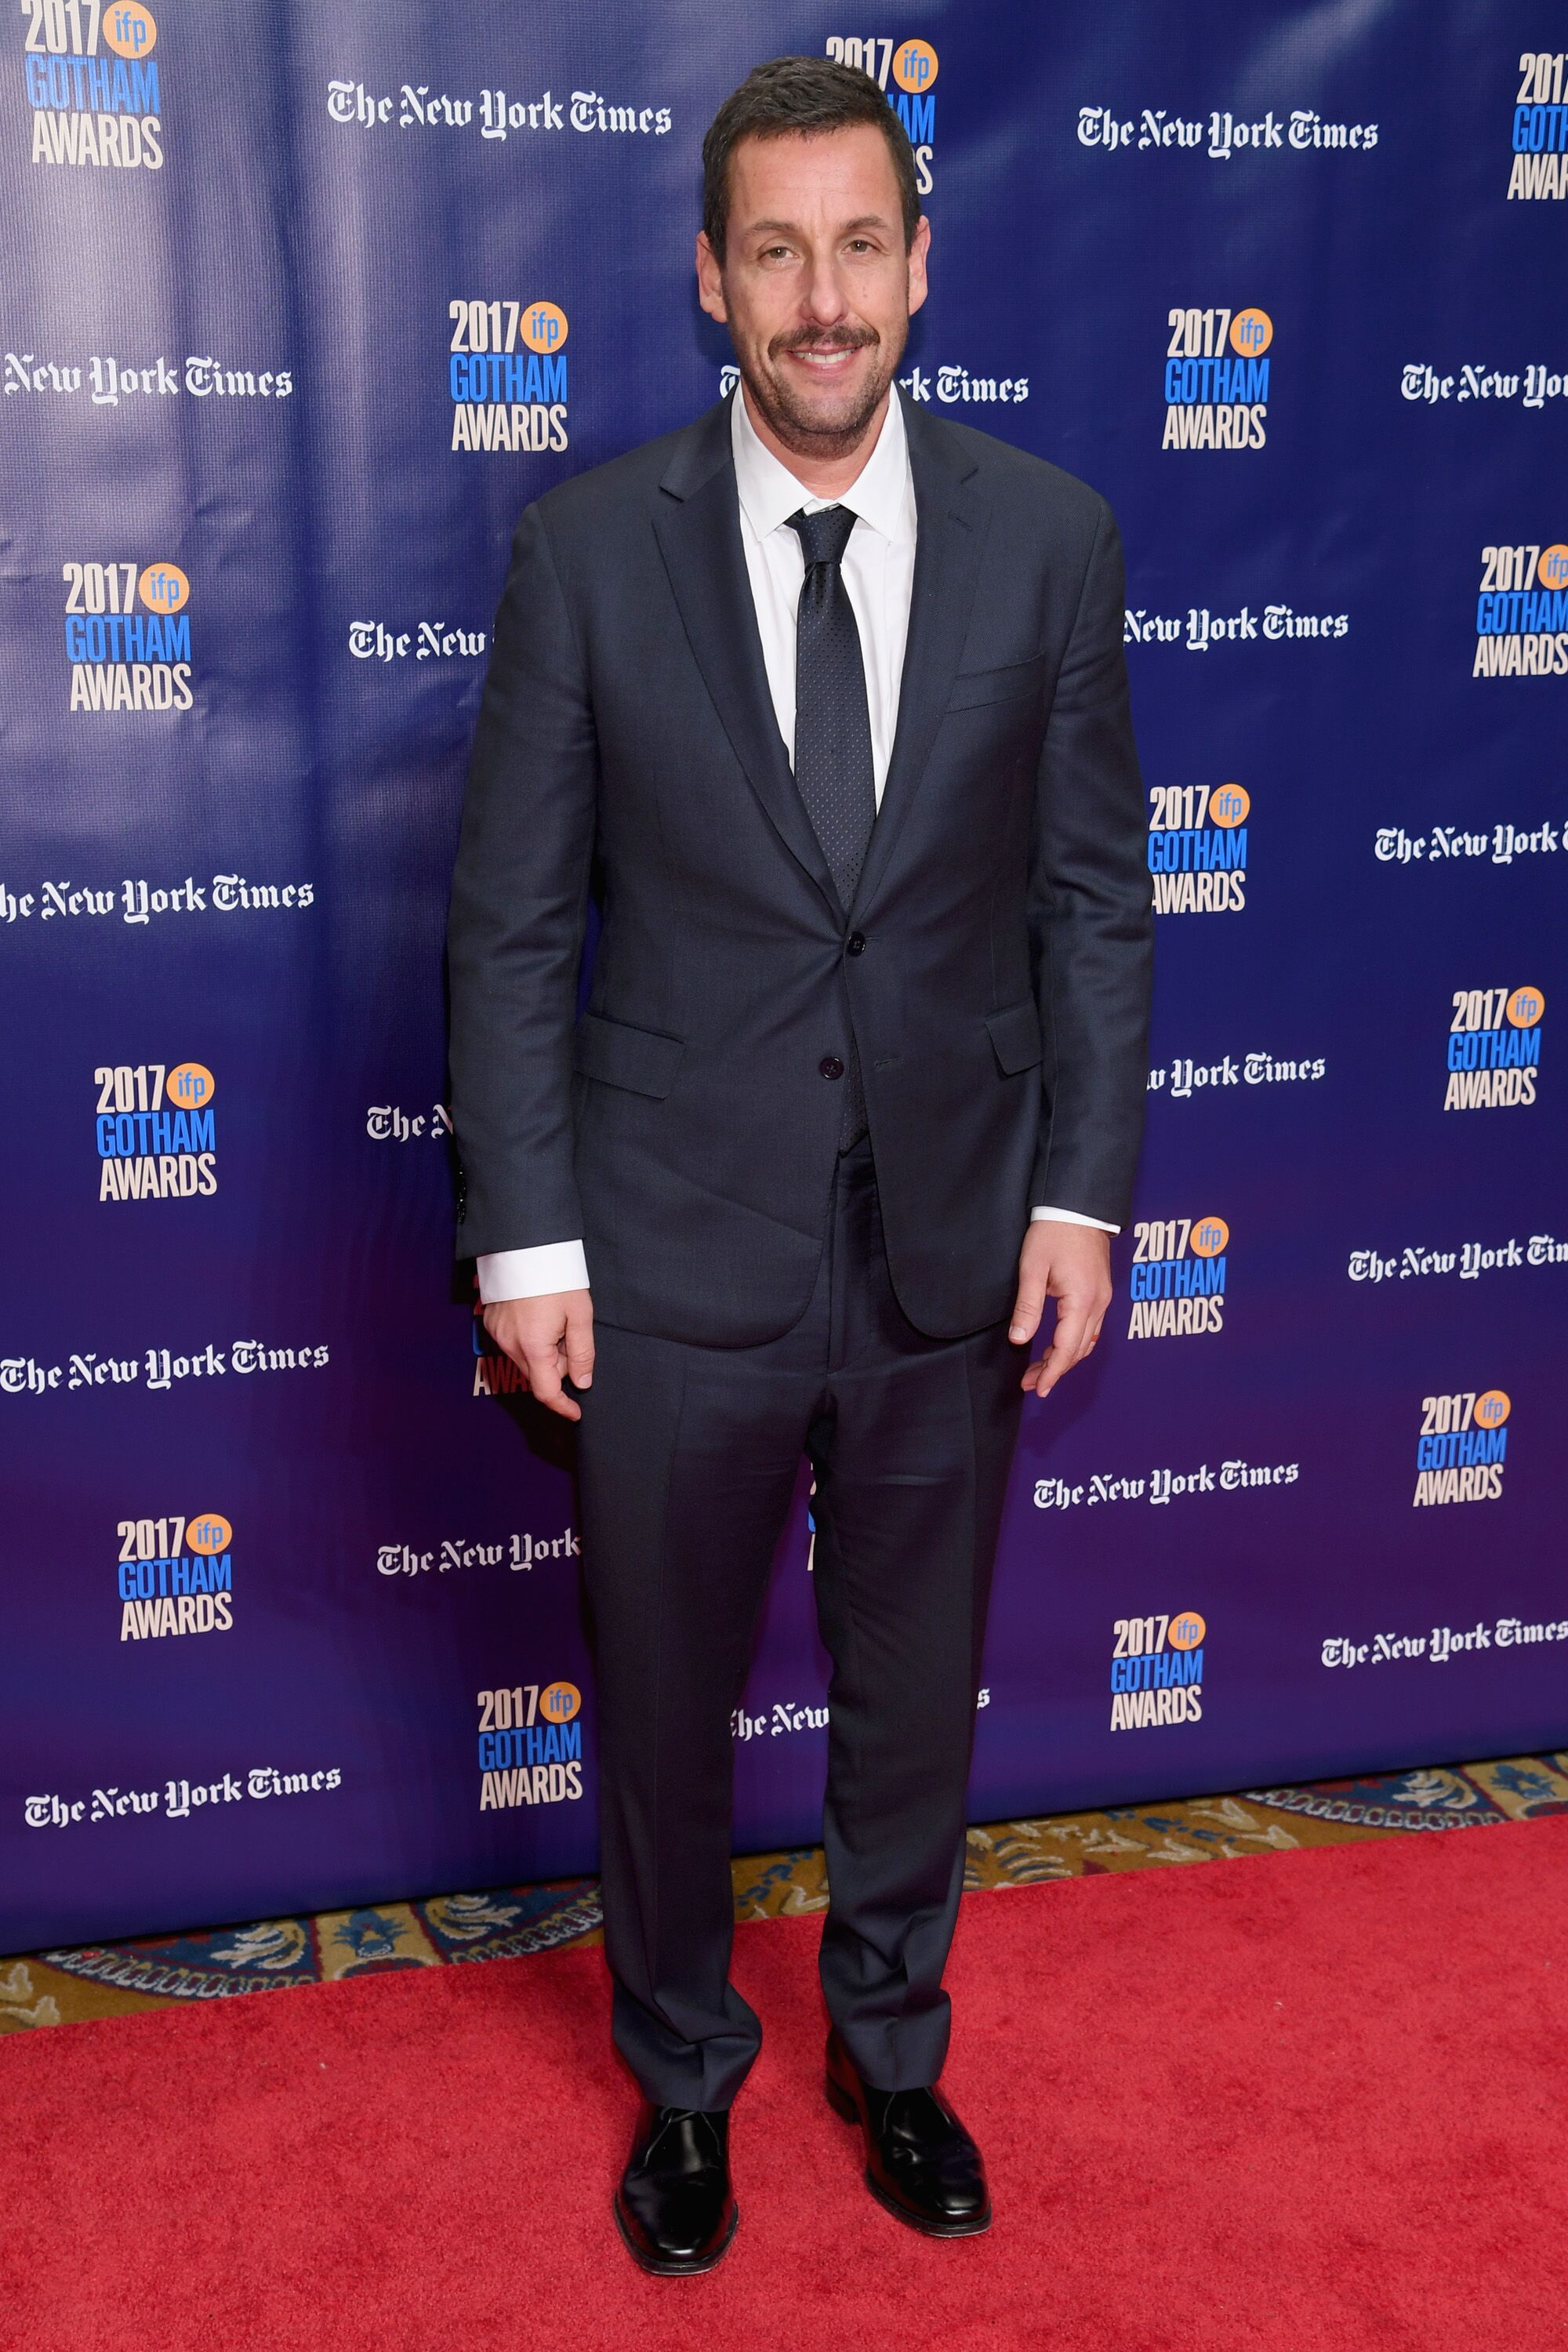 Adam Sandler attends IFP's 27th Annual Gotham Independent Film Awards.   Source: Getty Images